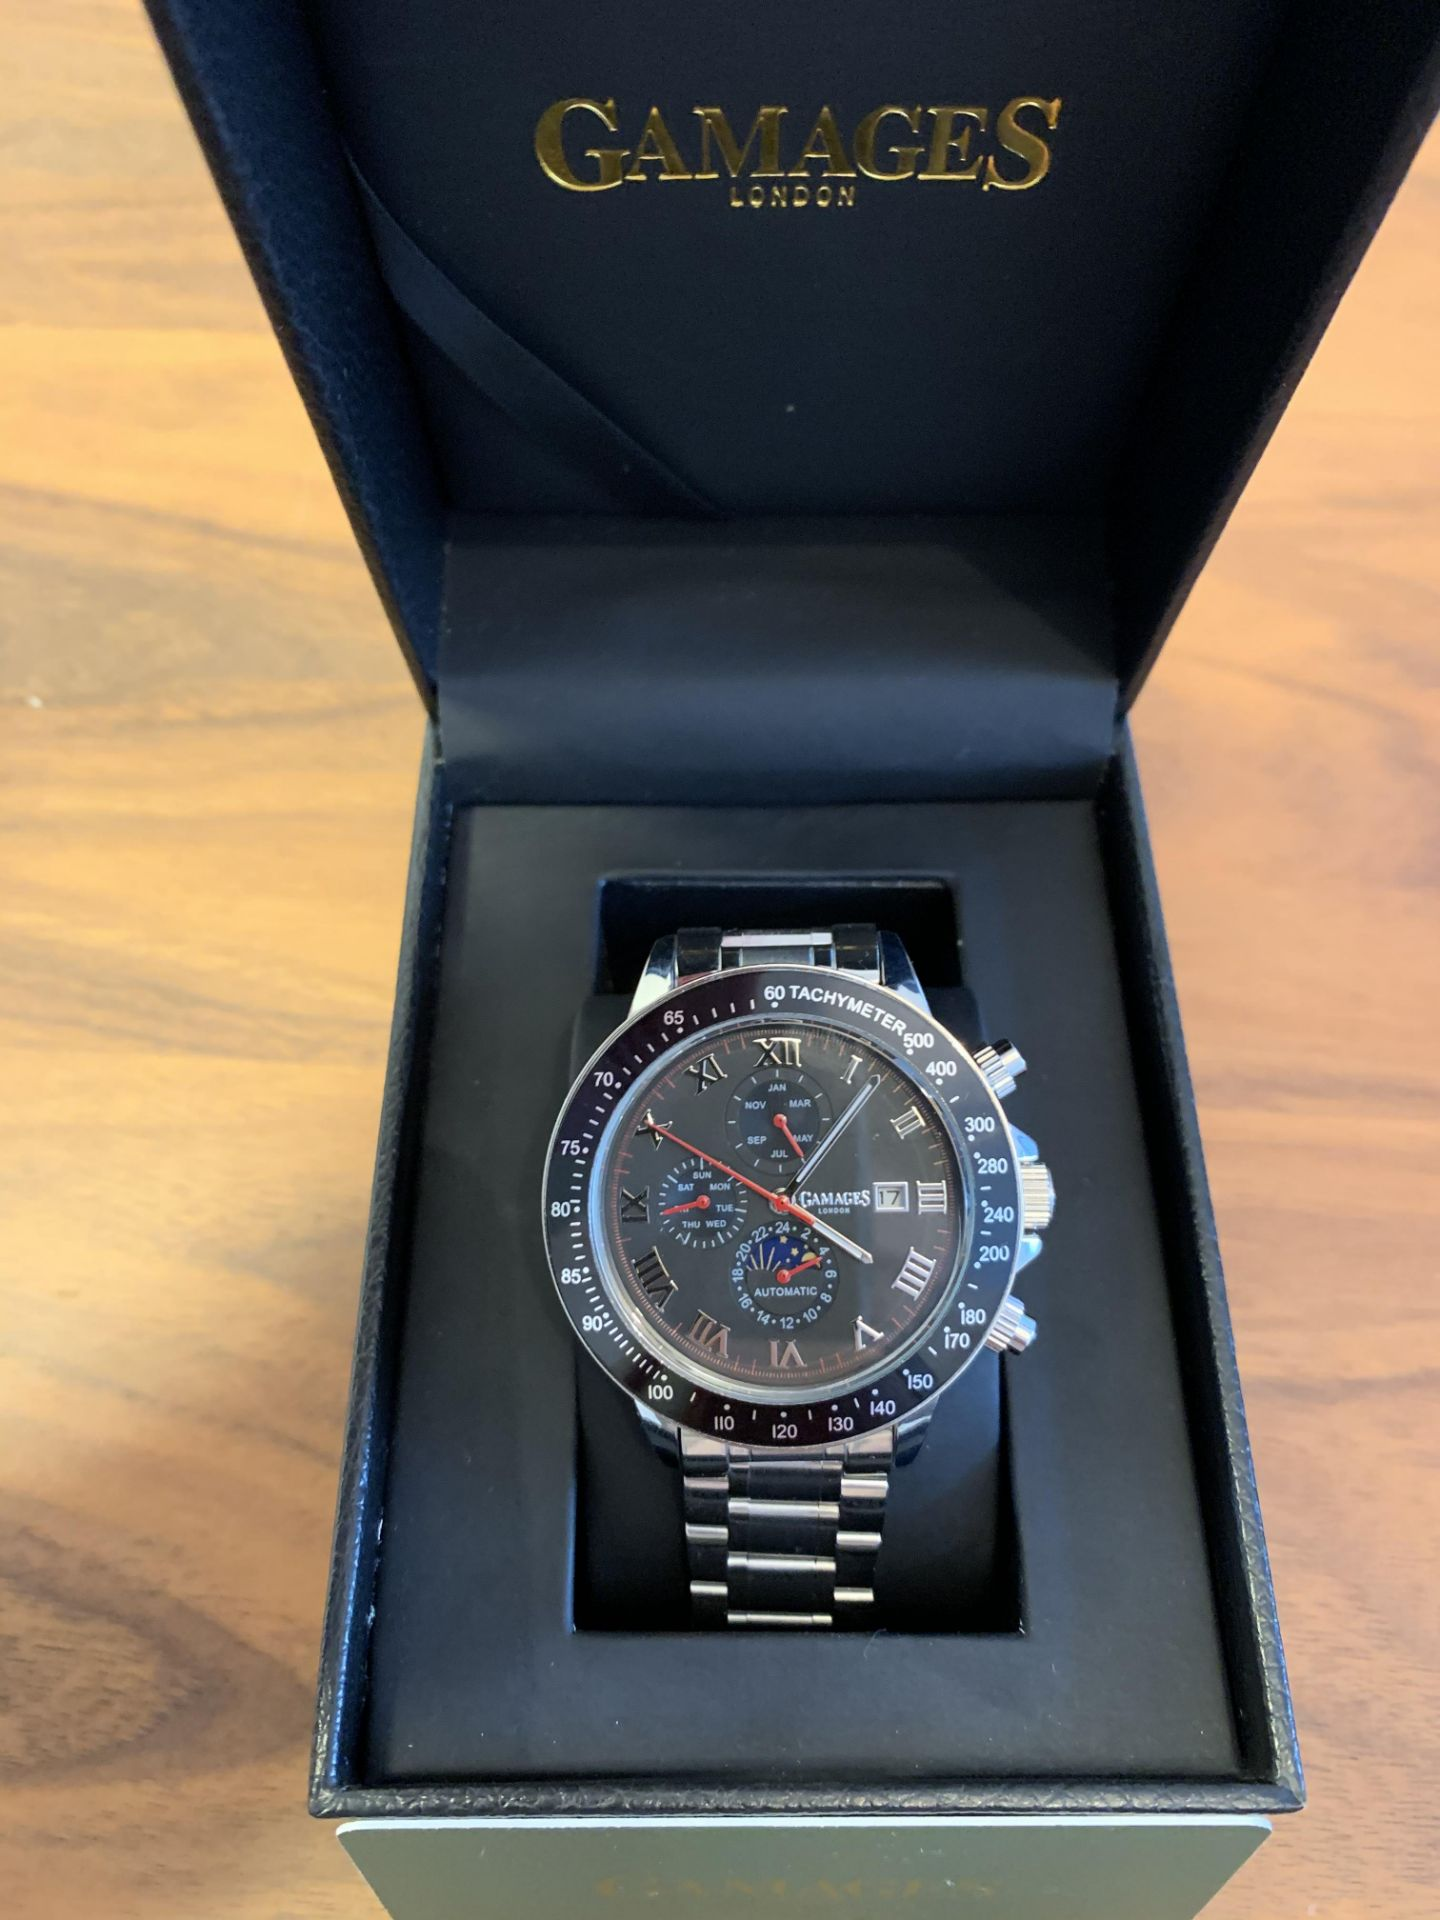 LiLtd Edition Hand Assembled Gamages Race Calendar Automatic Steel – 5 Year Warranty & Free Delivery - Image 3 of 5